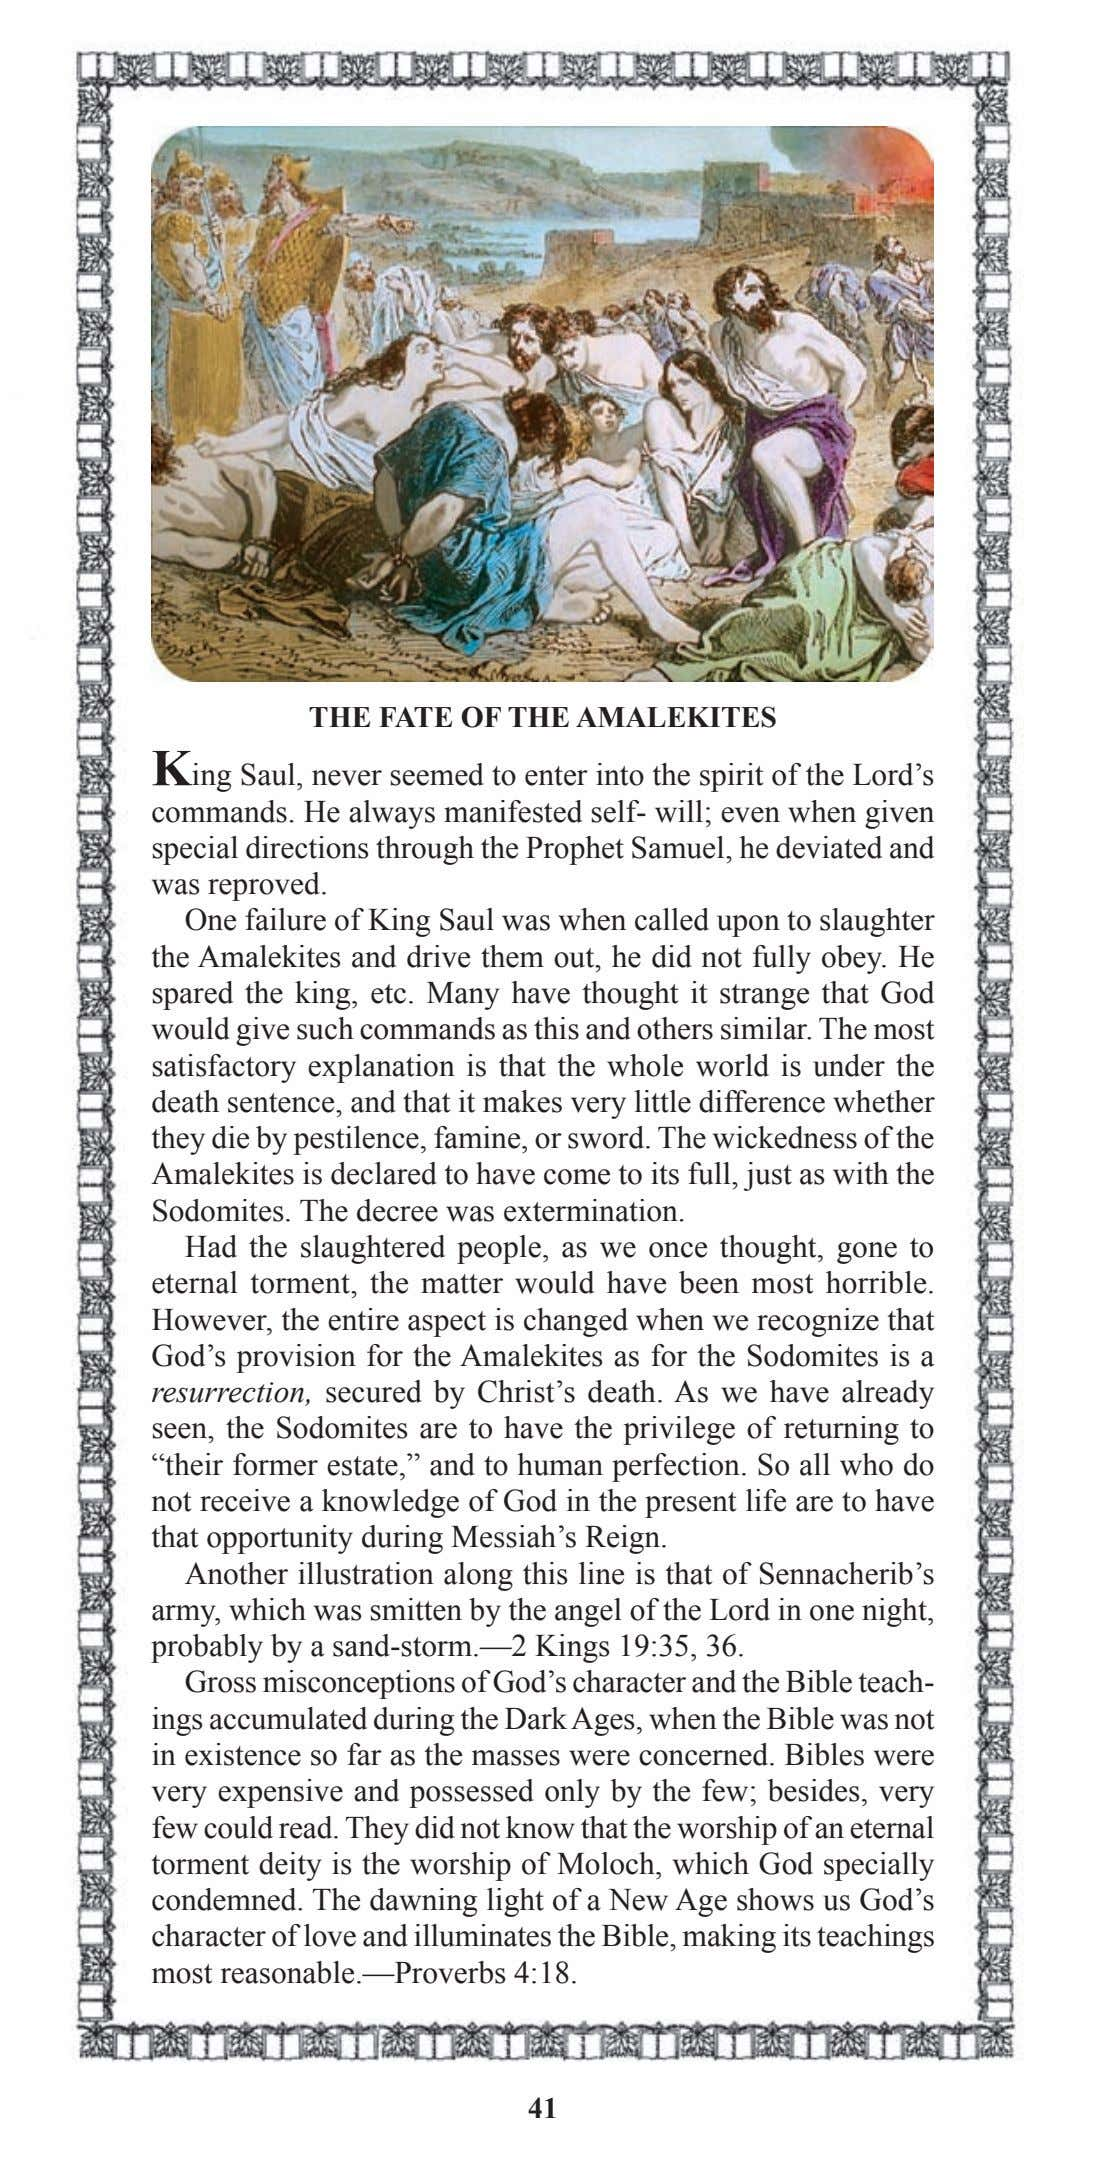 THE FATE OF THE AMALEKITES King Saul, never seemed to enter into the spirit of